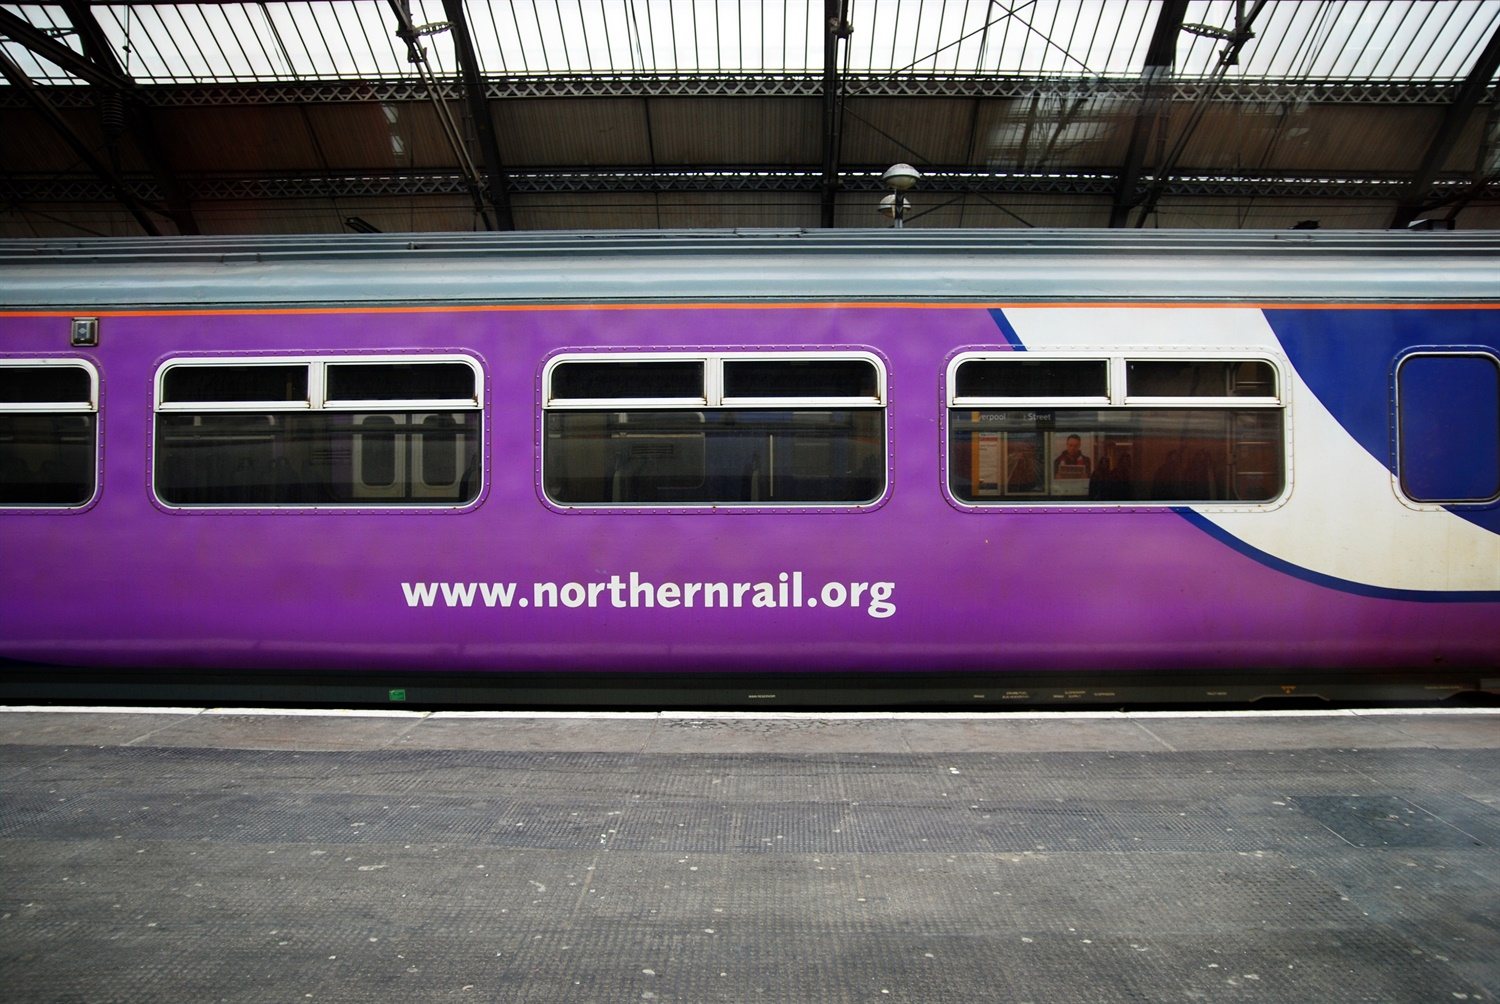 New six-carriage Northern trains pushed back two years due to delayed upgrade works